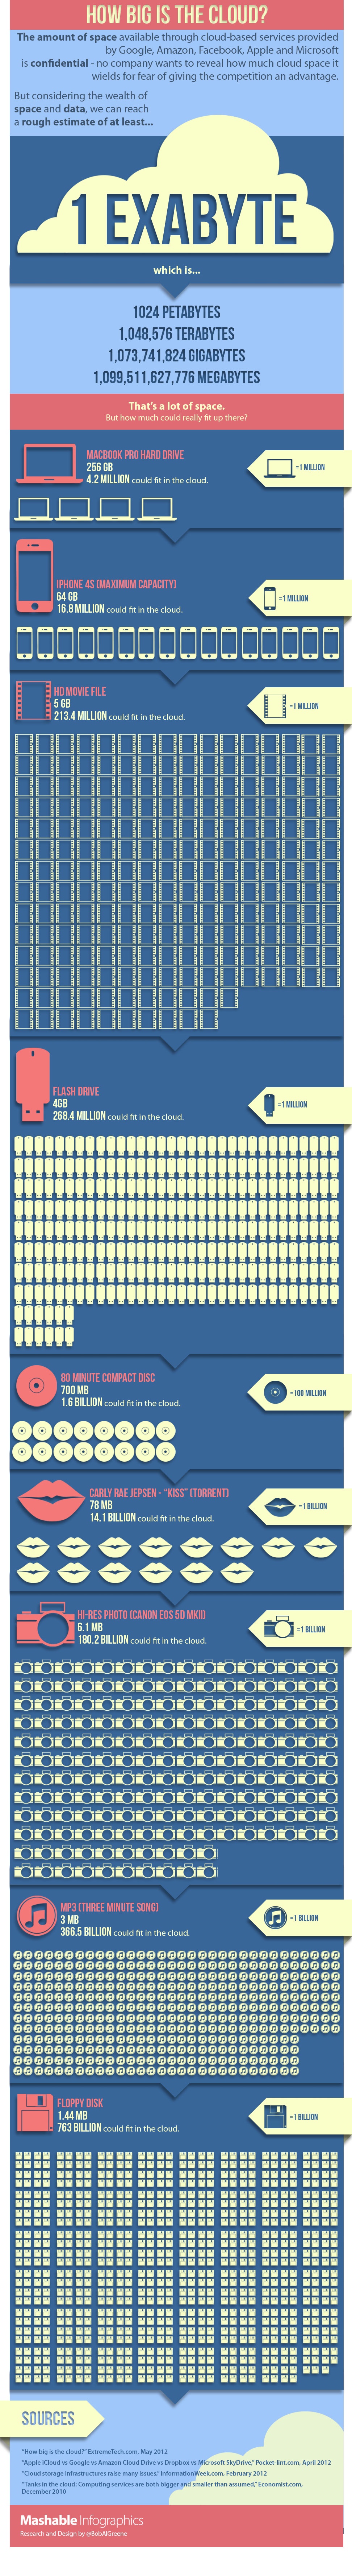 Cloud Storage Size-Infographic